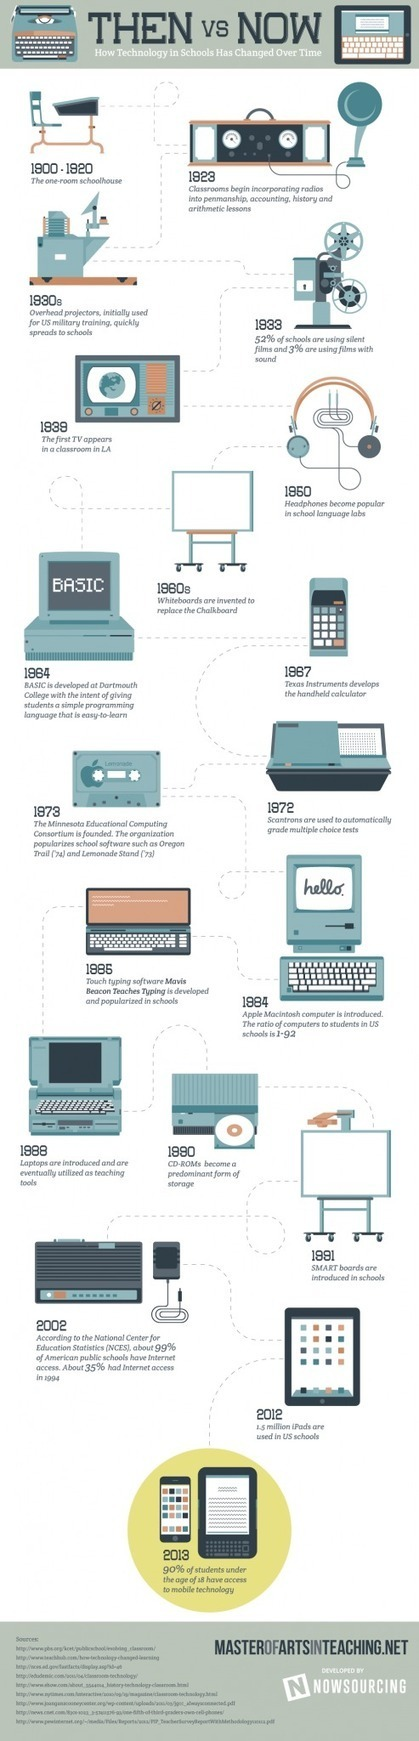 Timeline of Educational Technology in Schools Infographic | Bradwell Institute Media | Scoop.it